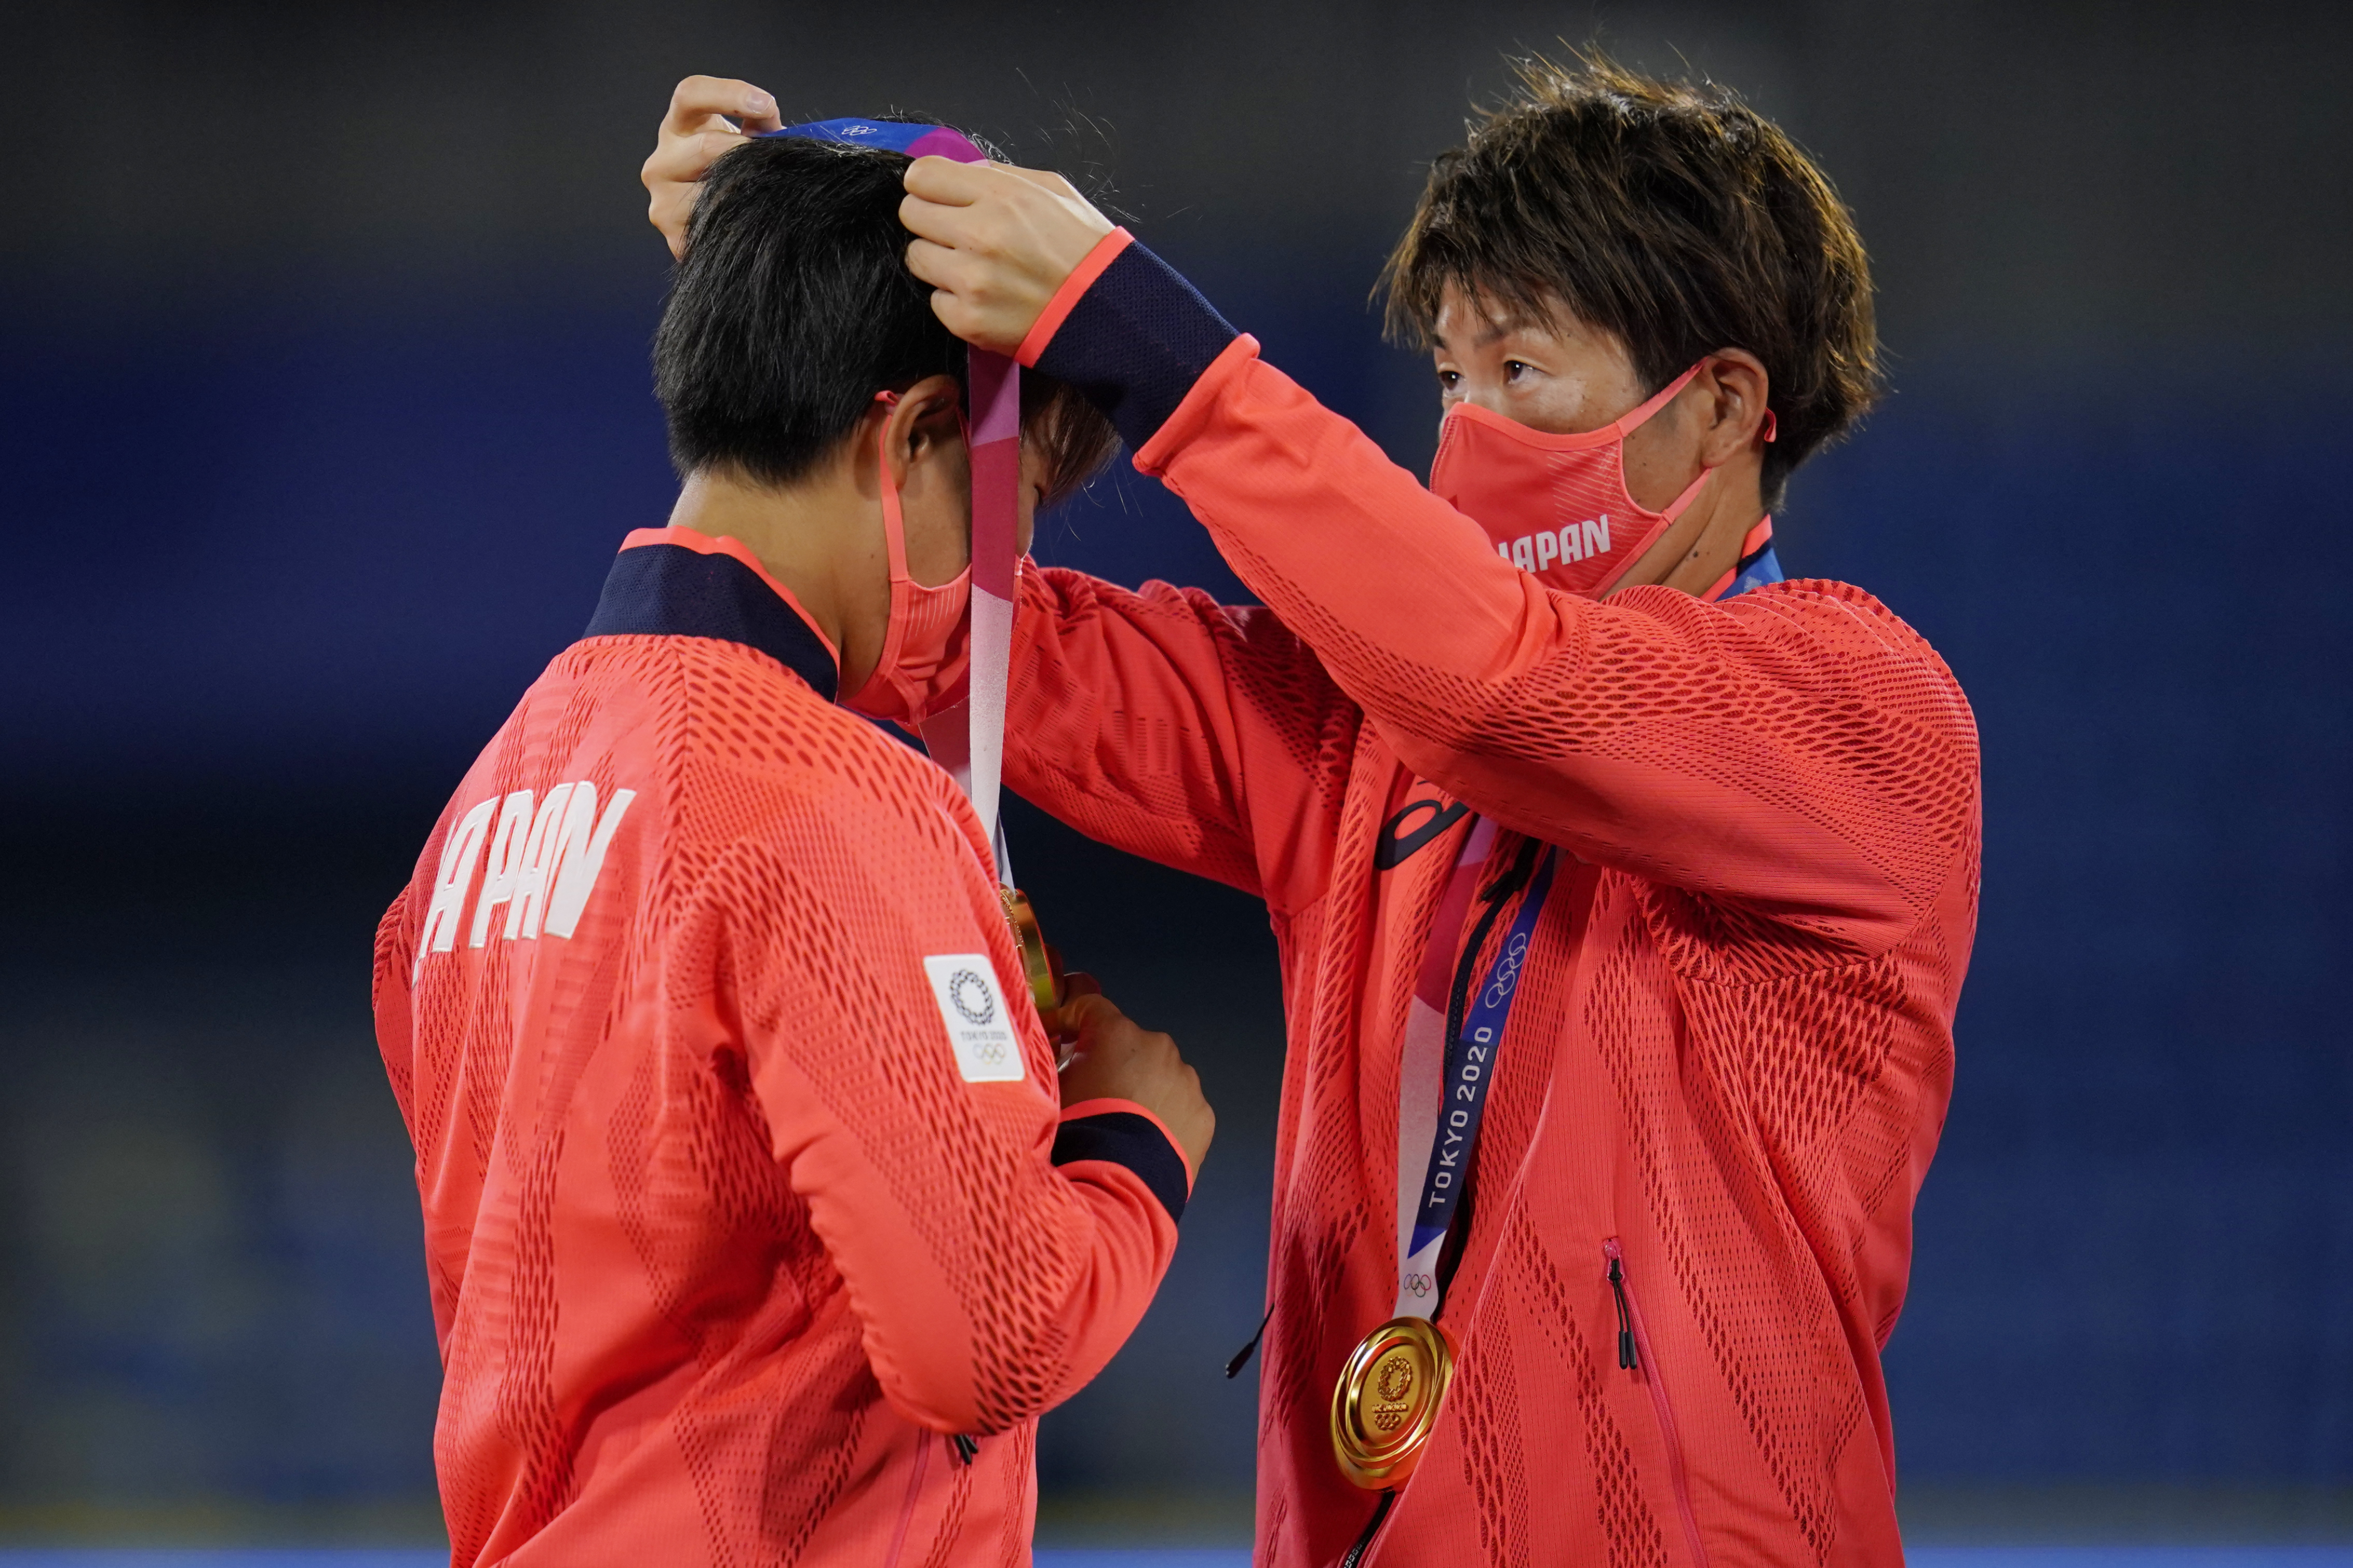 Japan team members adjust their gold medals at the medal ceremony for softball game at the 2020 Summer Olympics.